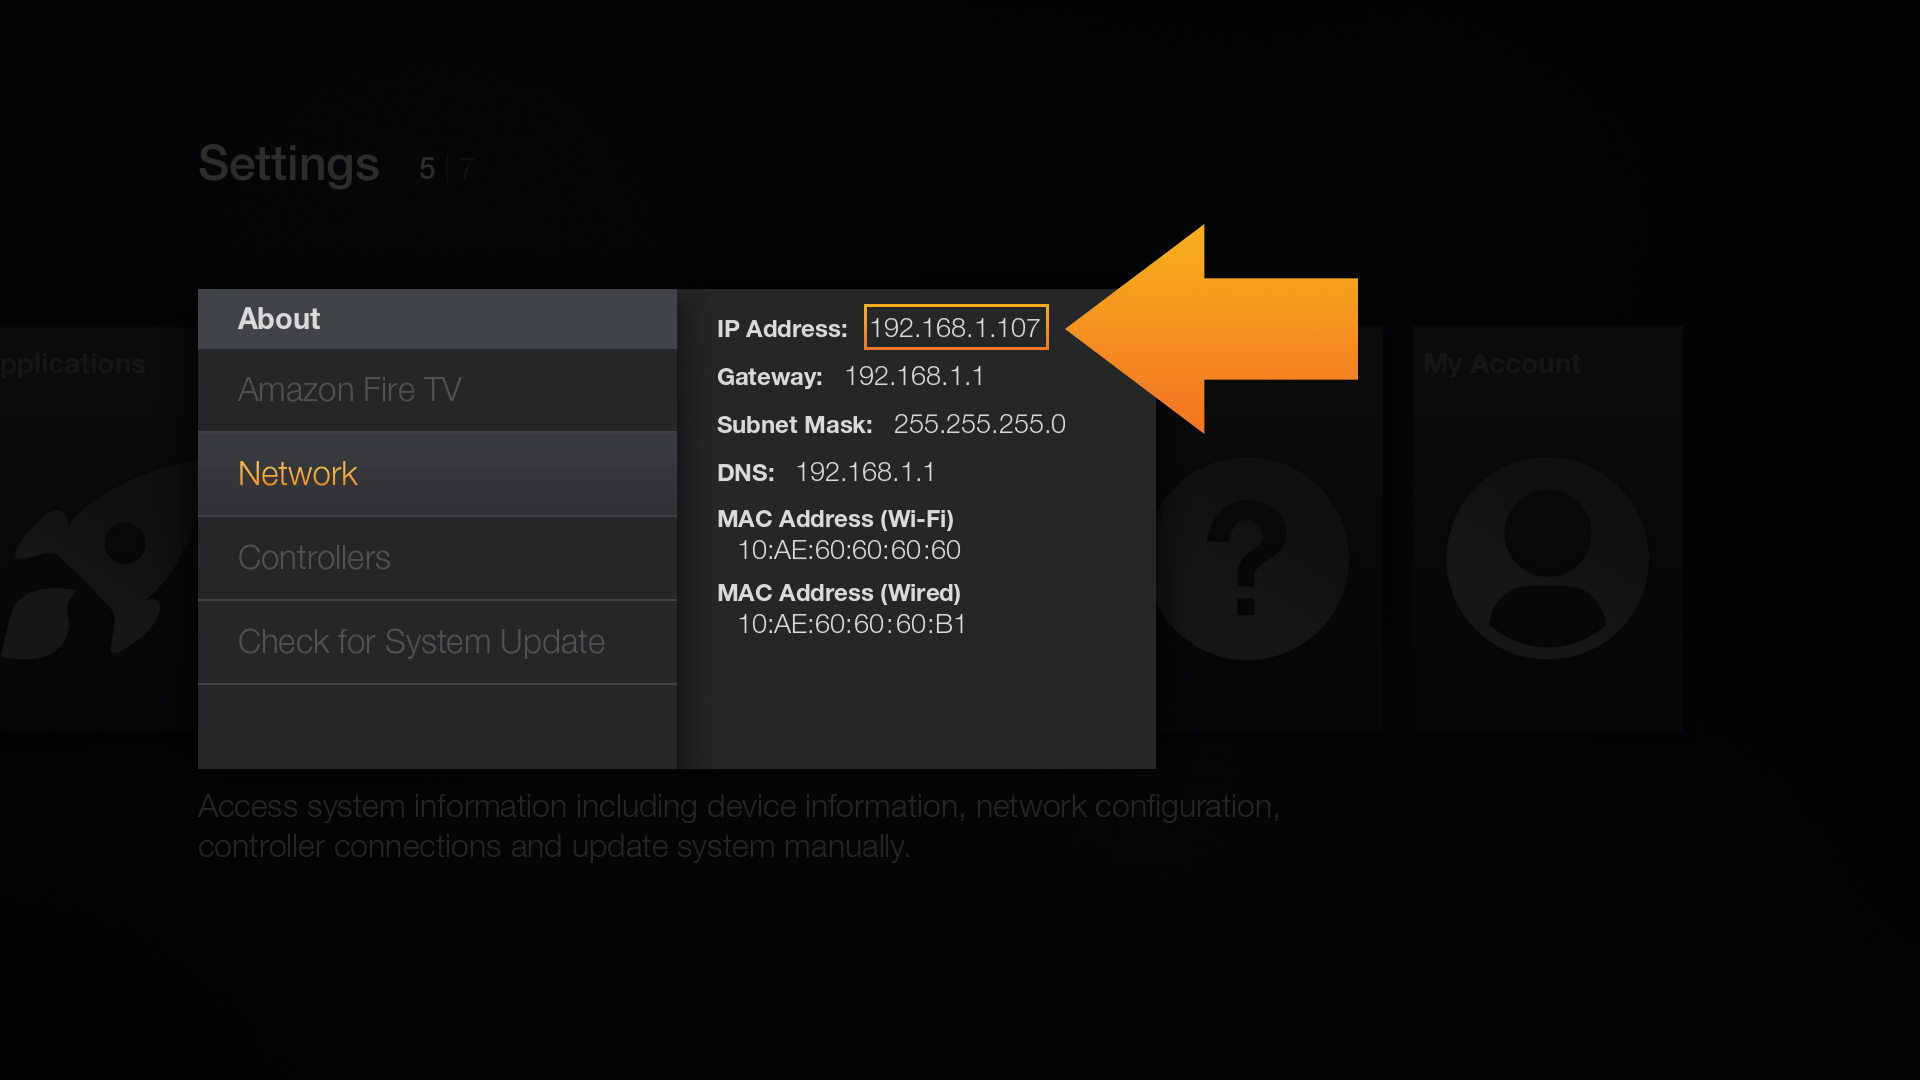 How to determine the IP Address of an Amazon Fire TV or Fire TV